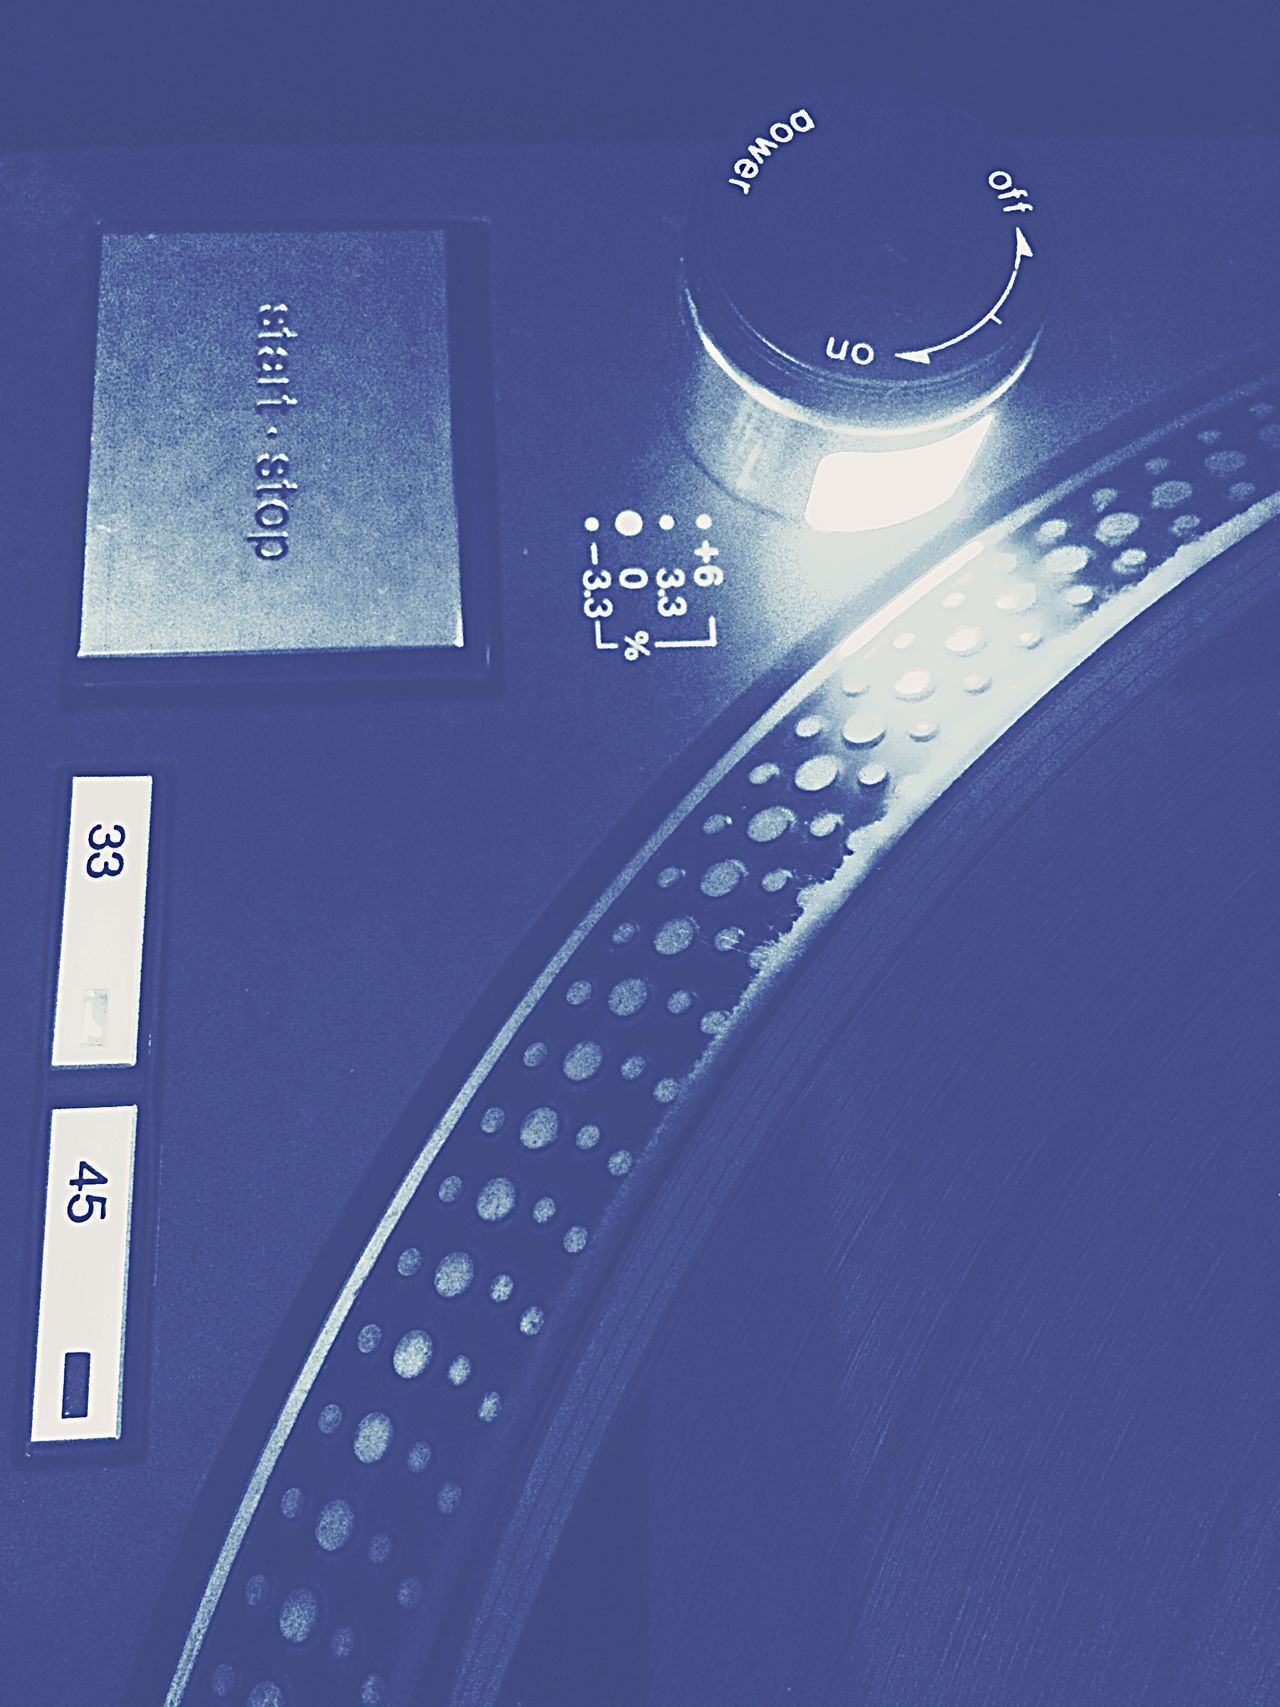 Record Player Turntable Vinyl Records Sound Of Music Put The Needle To The Record Spin Count The Beats Music Is My Life j IPhoneography